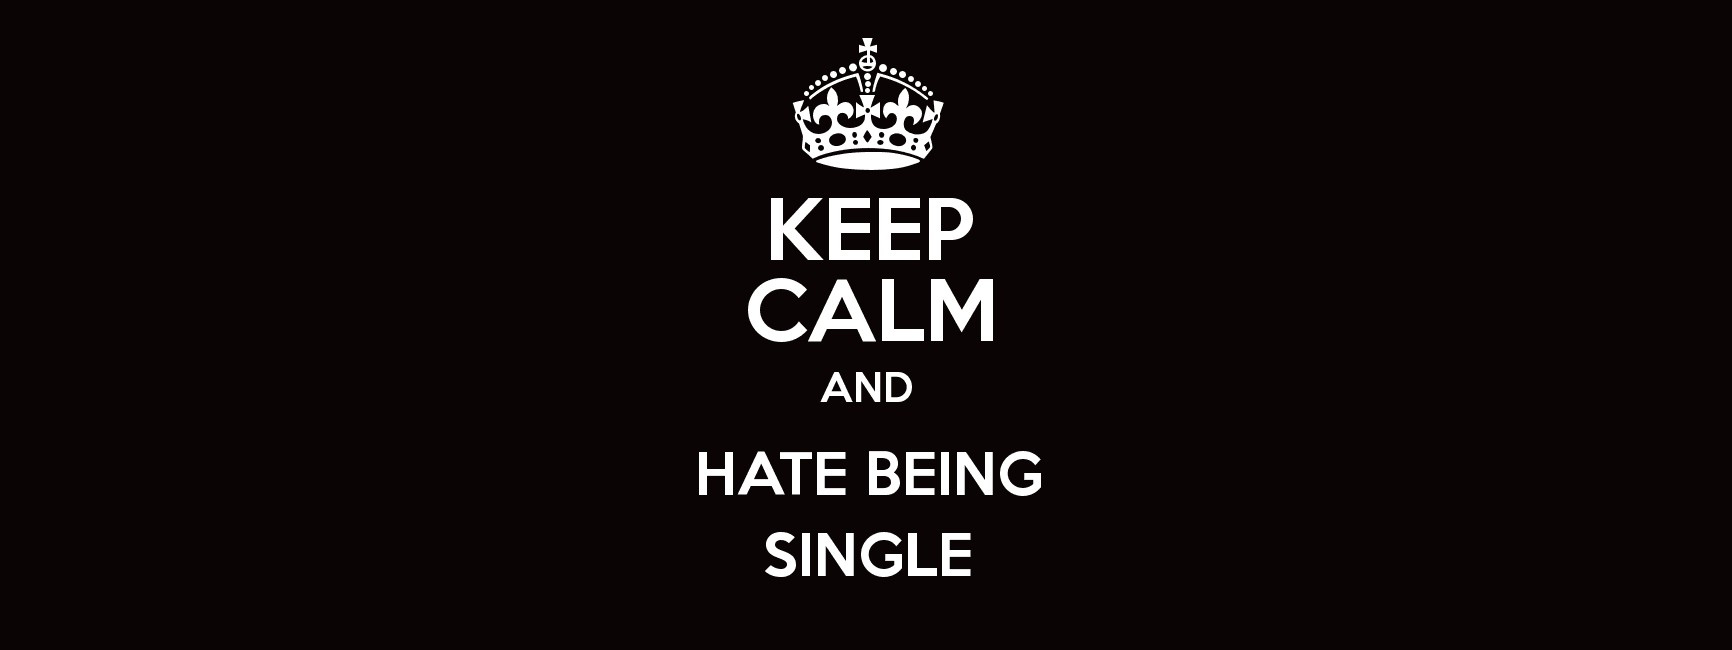 I Hate Being Single Quotes More Information Modni Auto